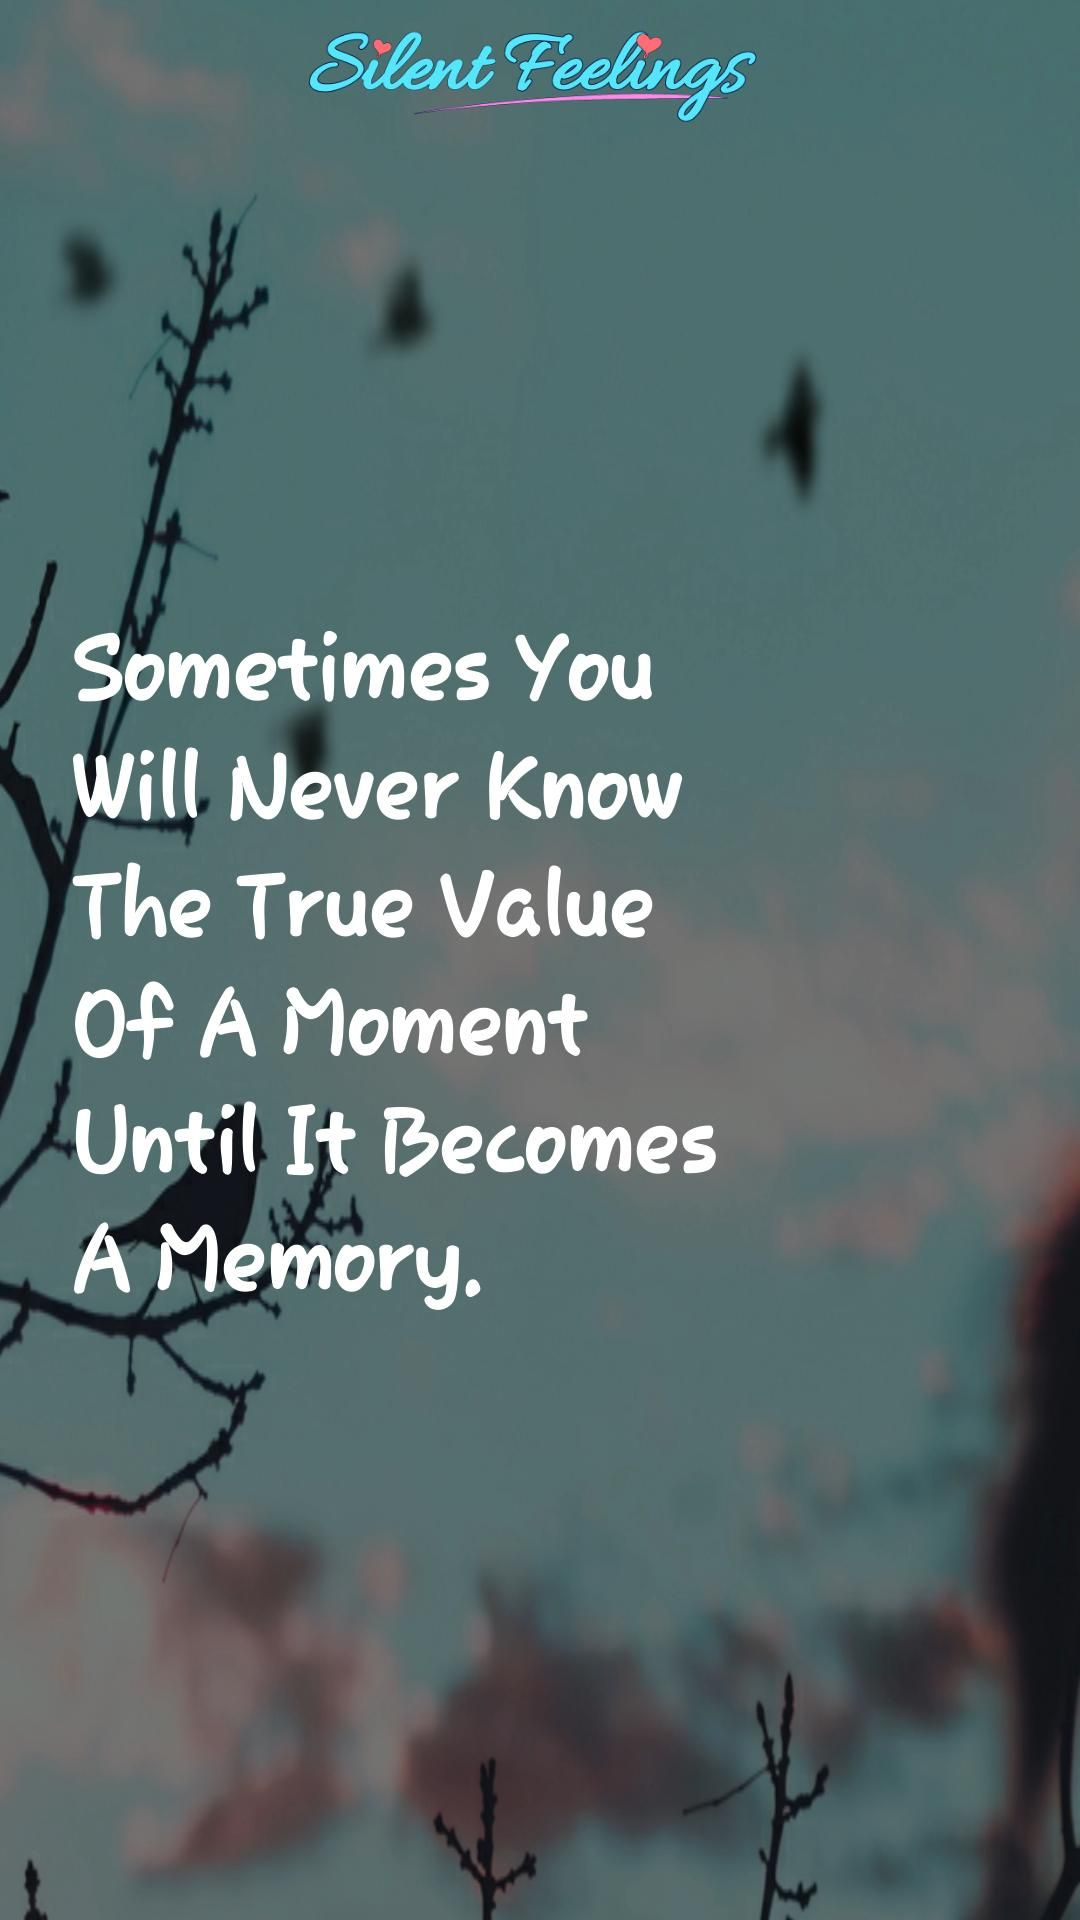 Sometimes You Will Never Know Love Quotes Videos Silent Feelings Video Life Quotes Love Quotes For Him New Relationship Quotes